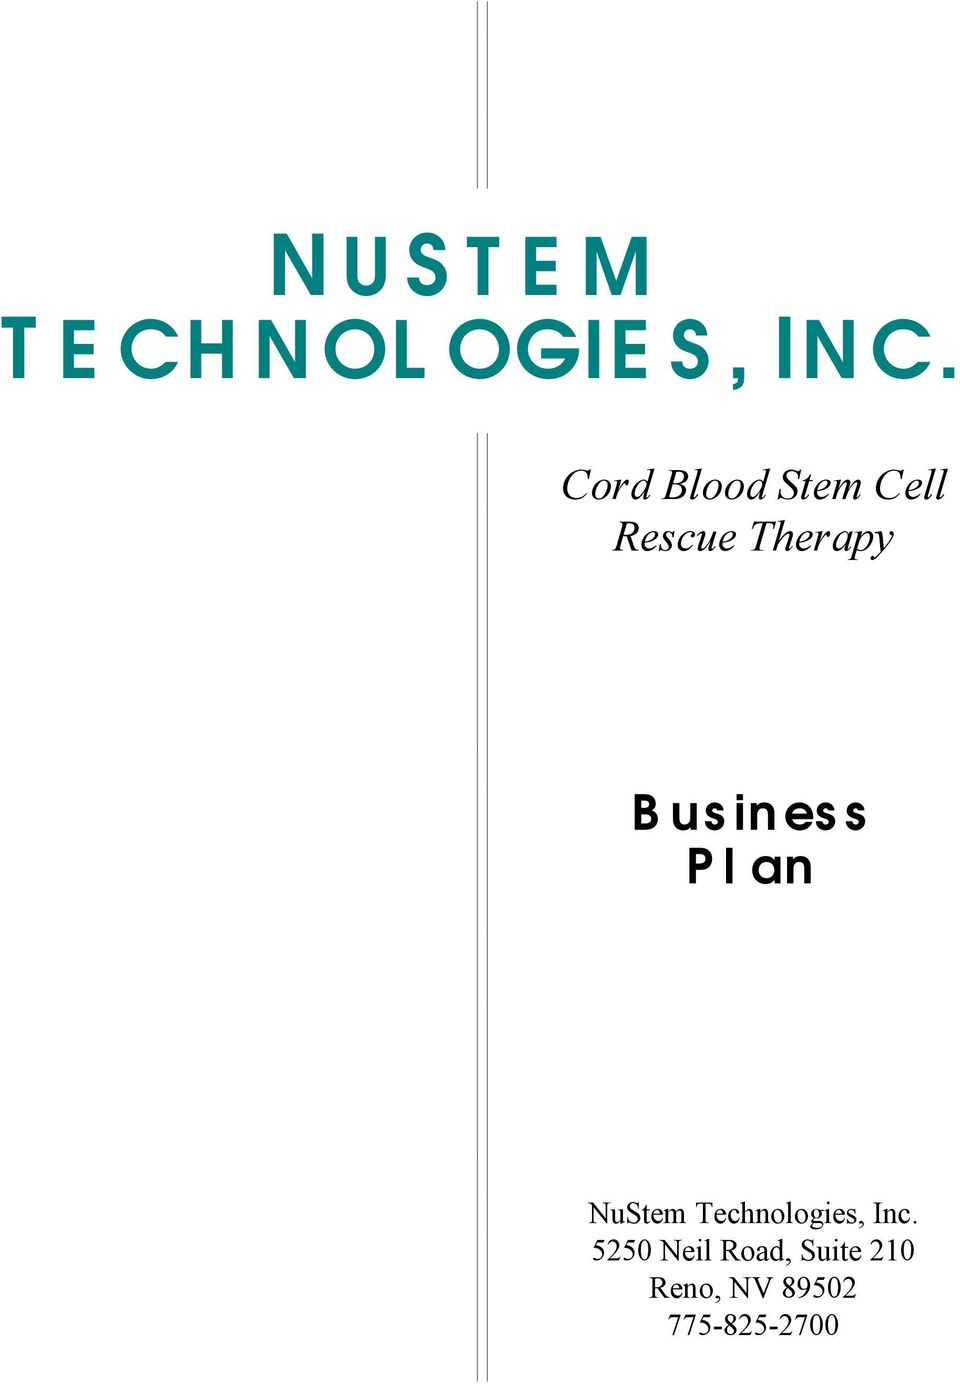 Business Plan NuStem Technologies, Inc.